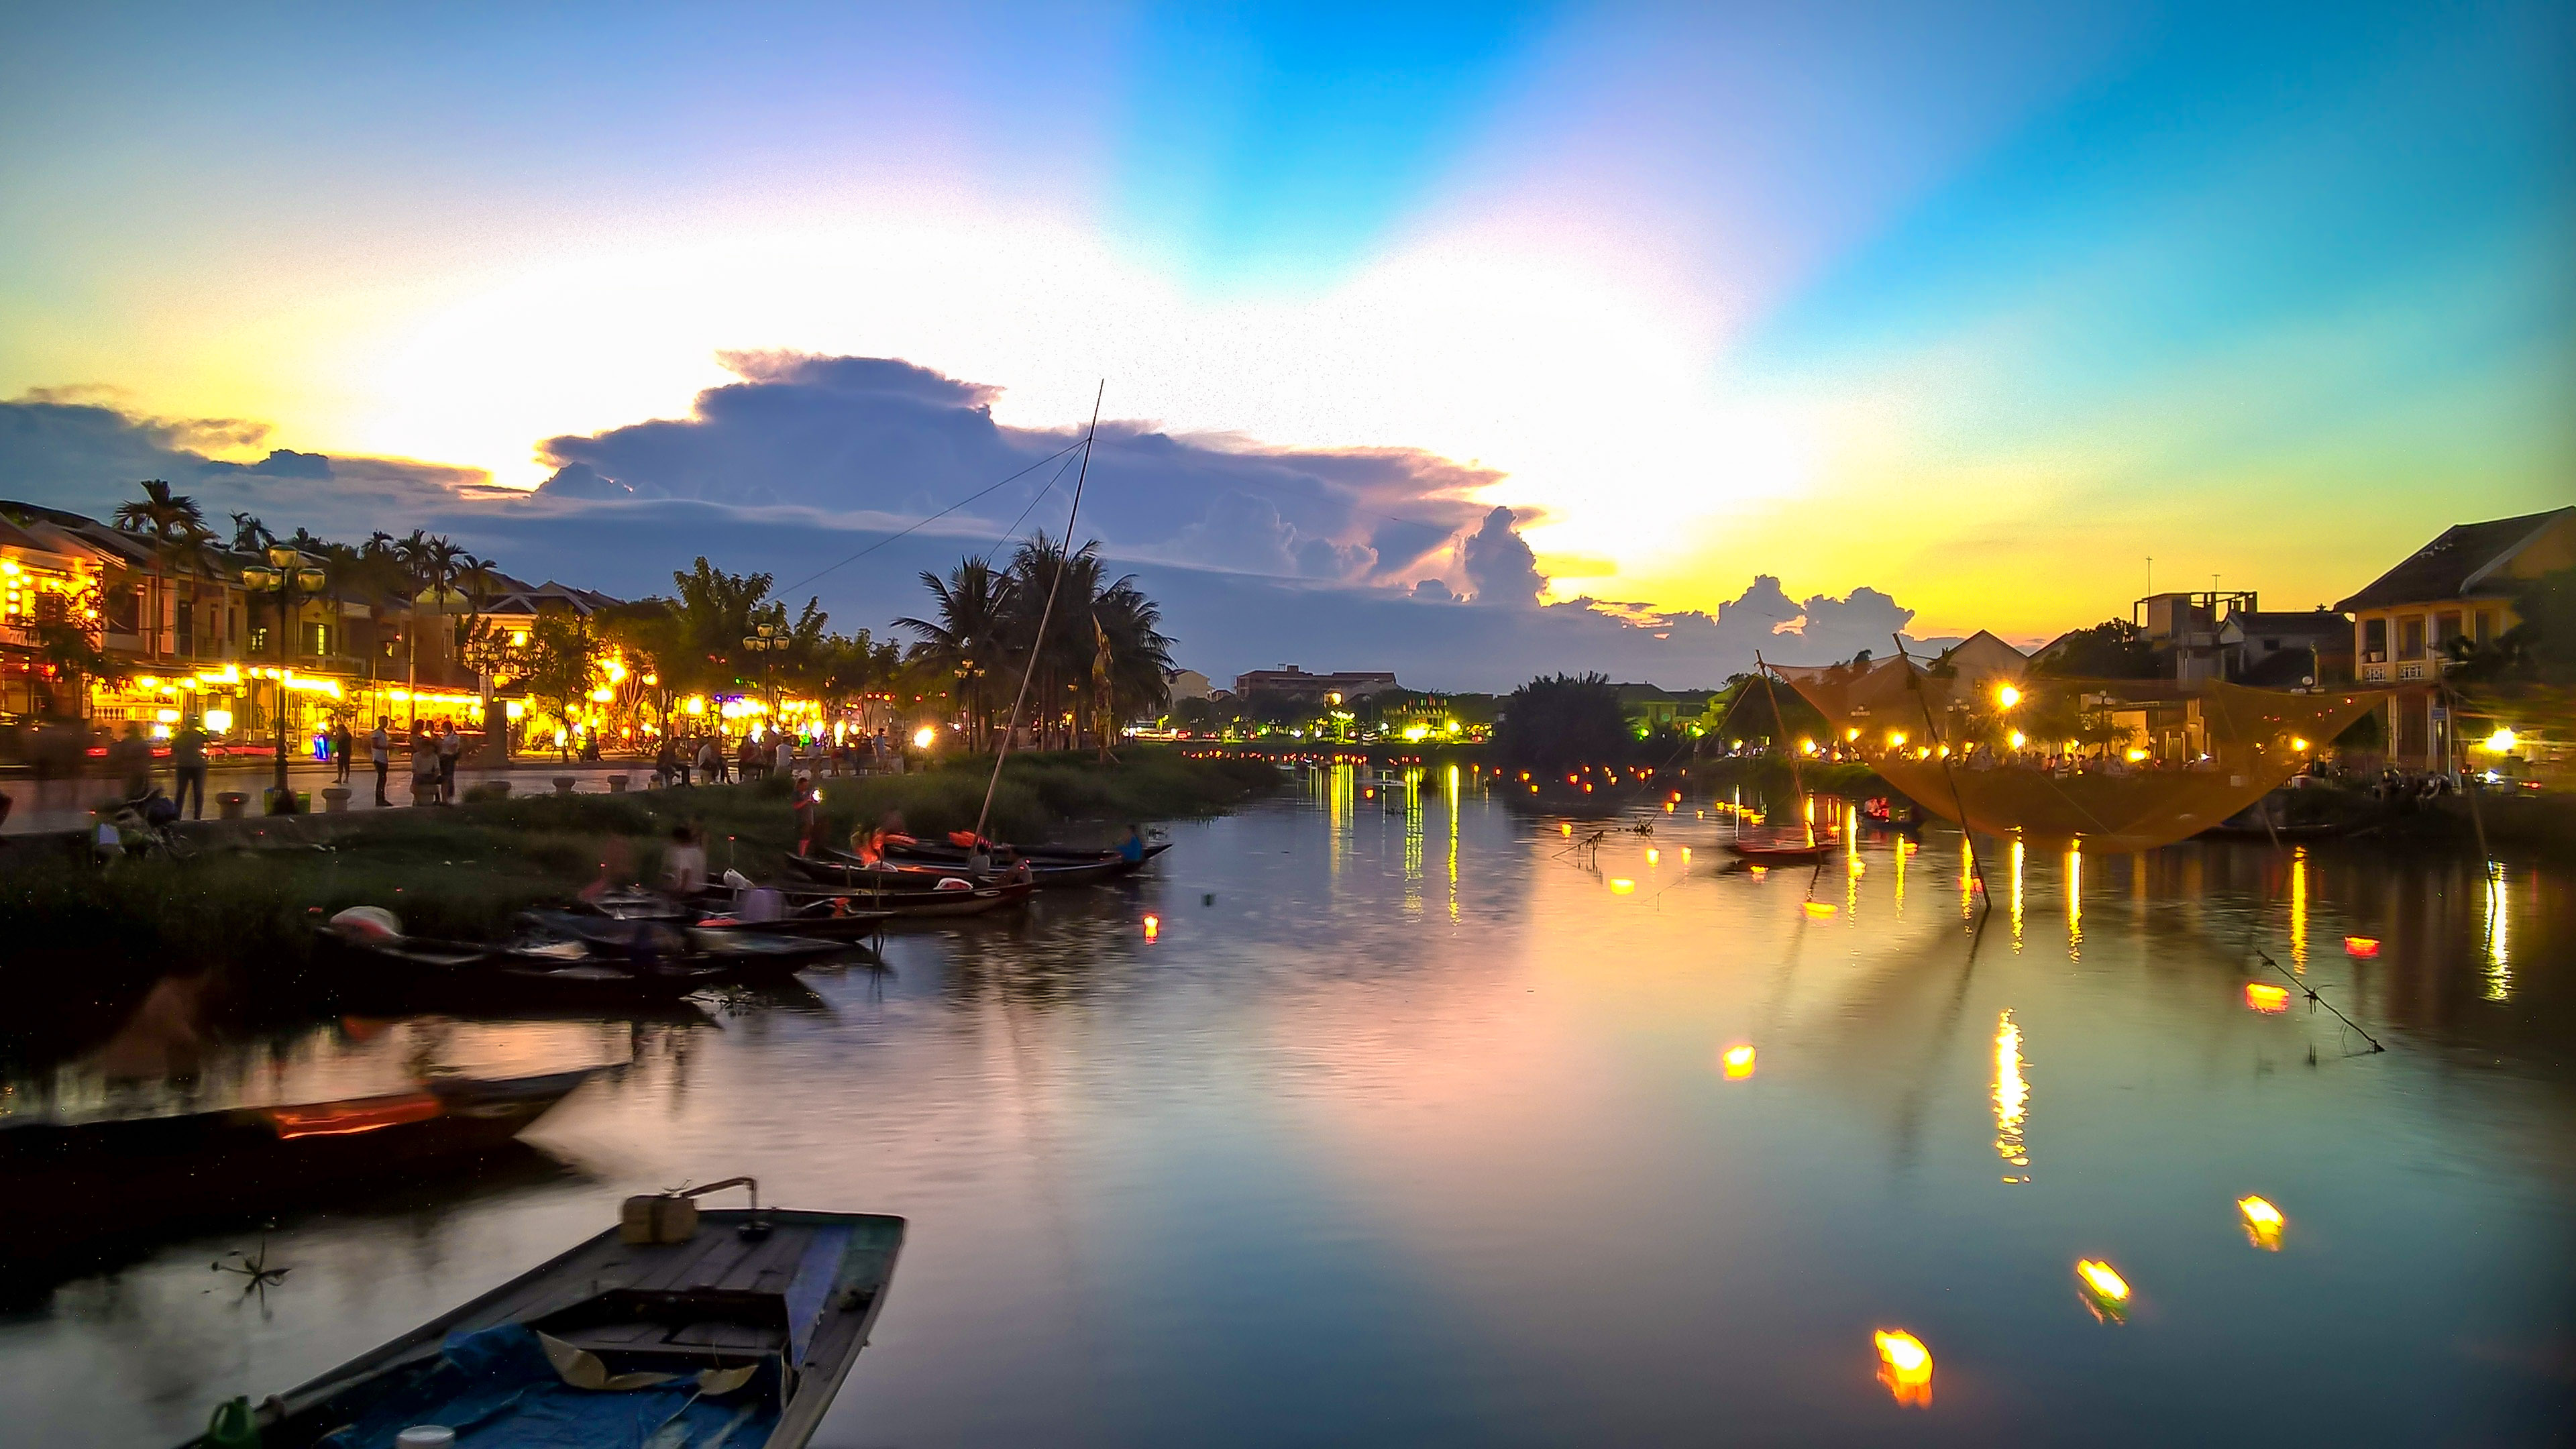 Hoi An Ancient Town, Cozy Vietnam Travel